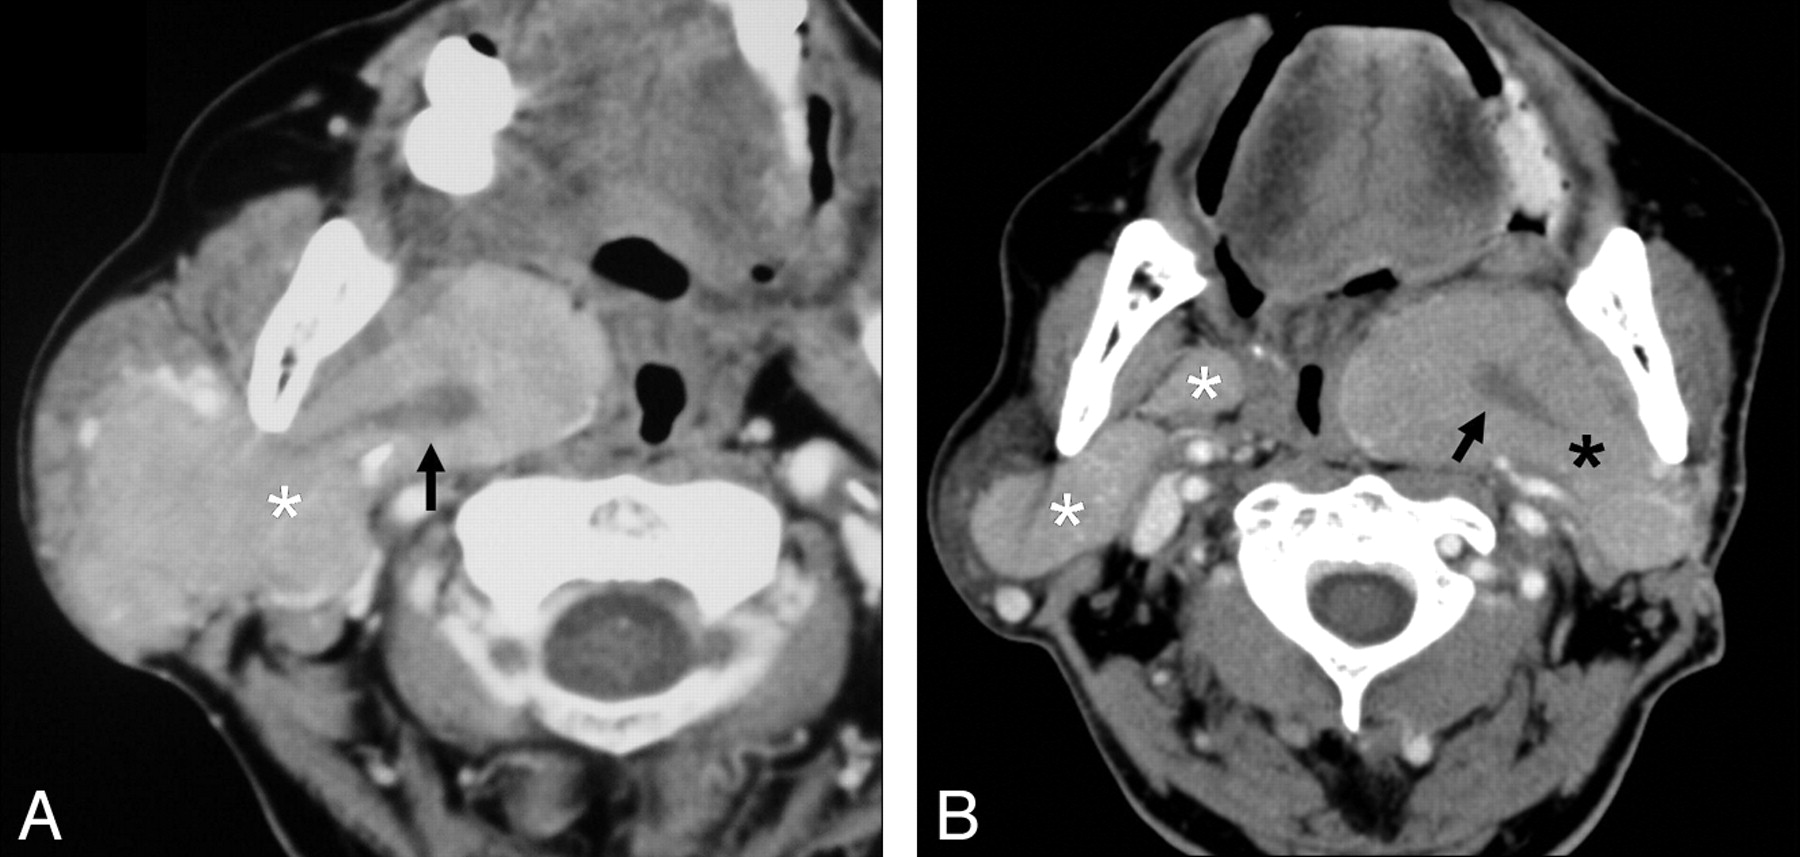 ct features of parotid gland oncocytomas  a study of 10